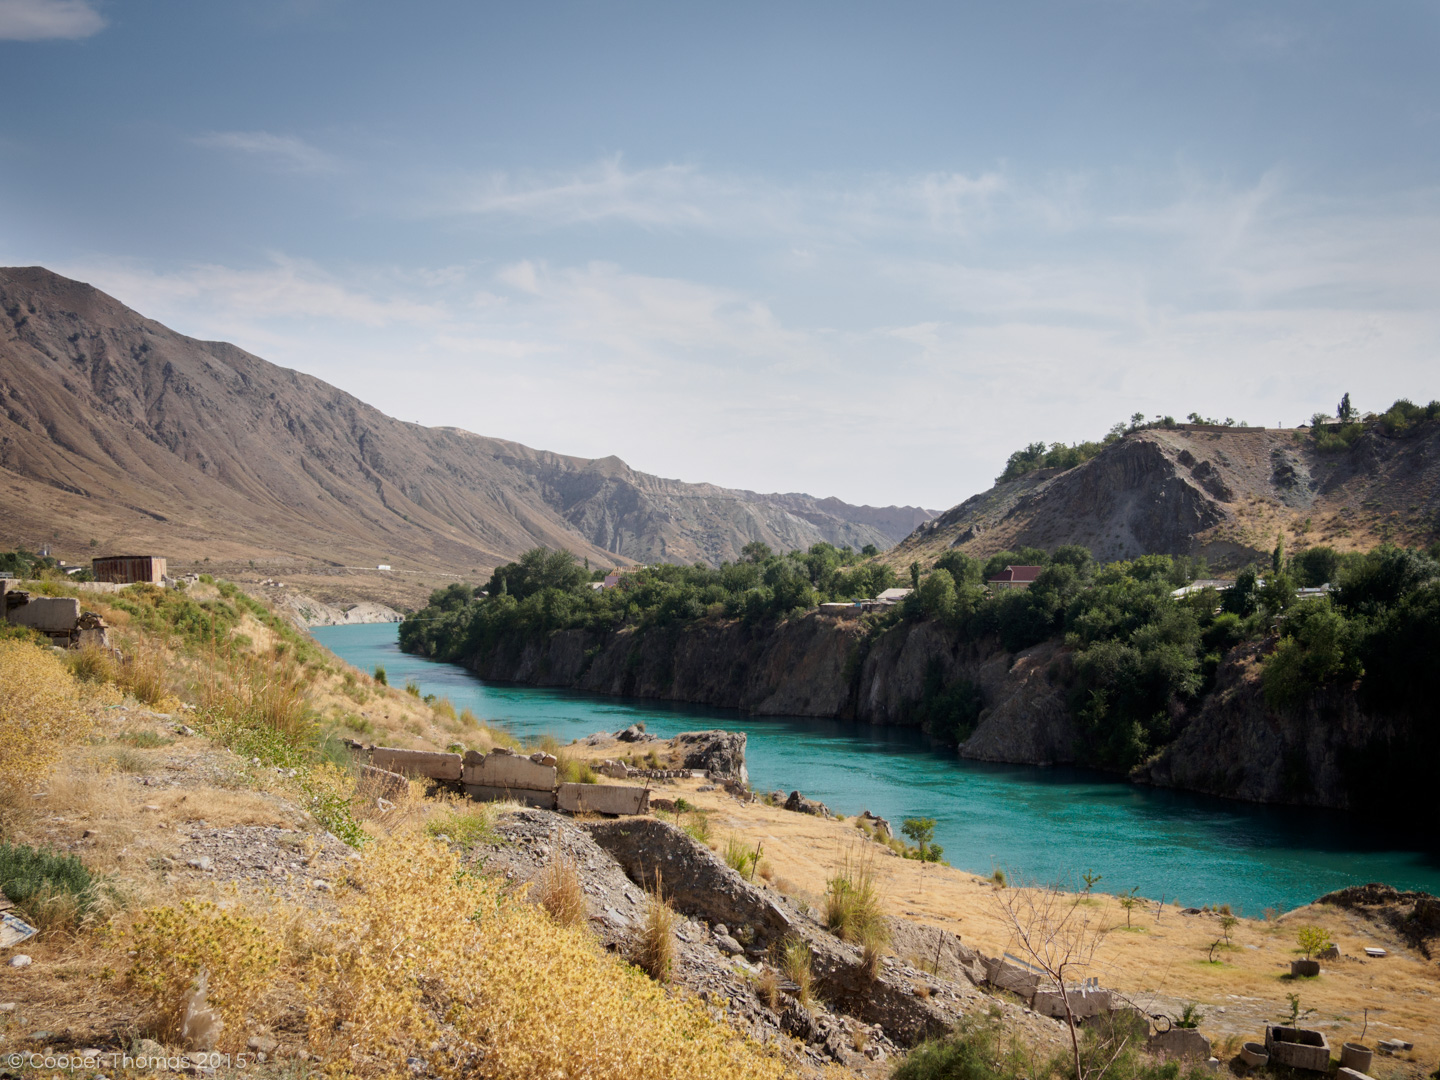 Driving along the Naryn River